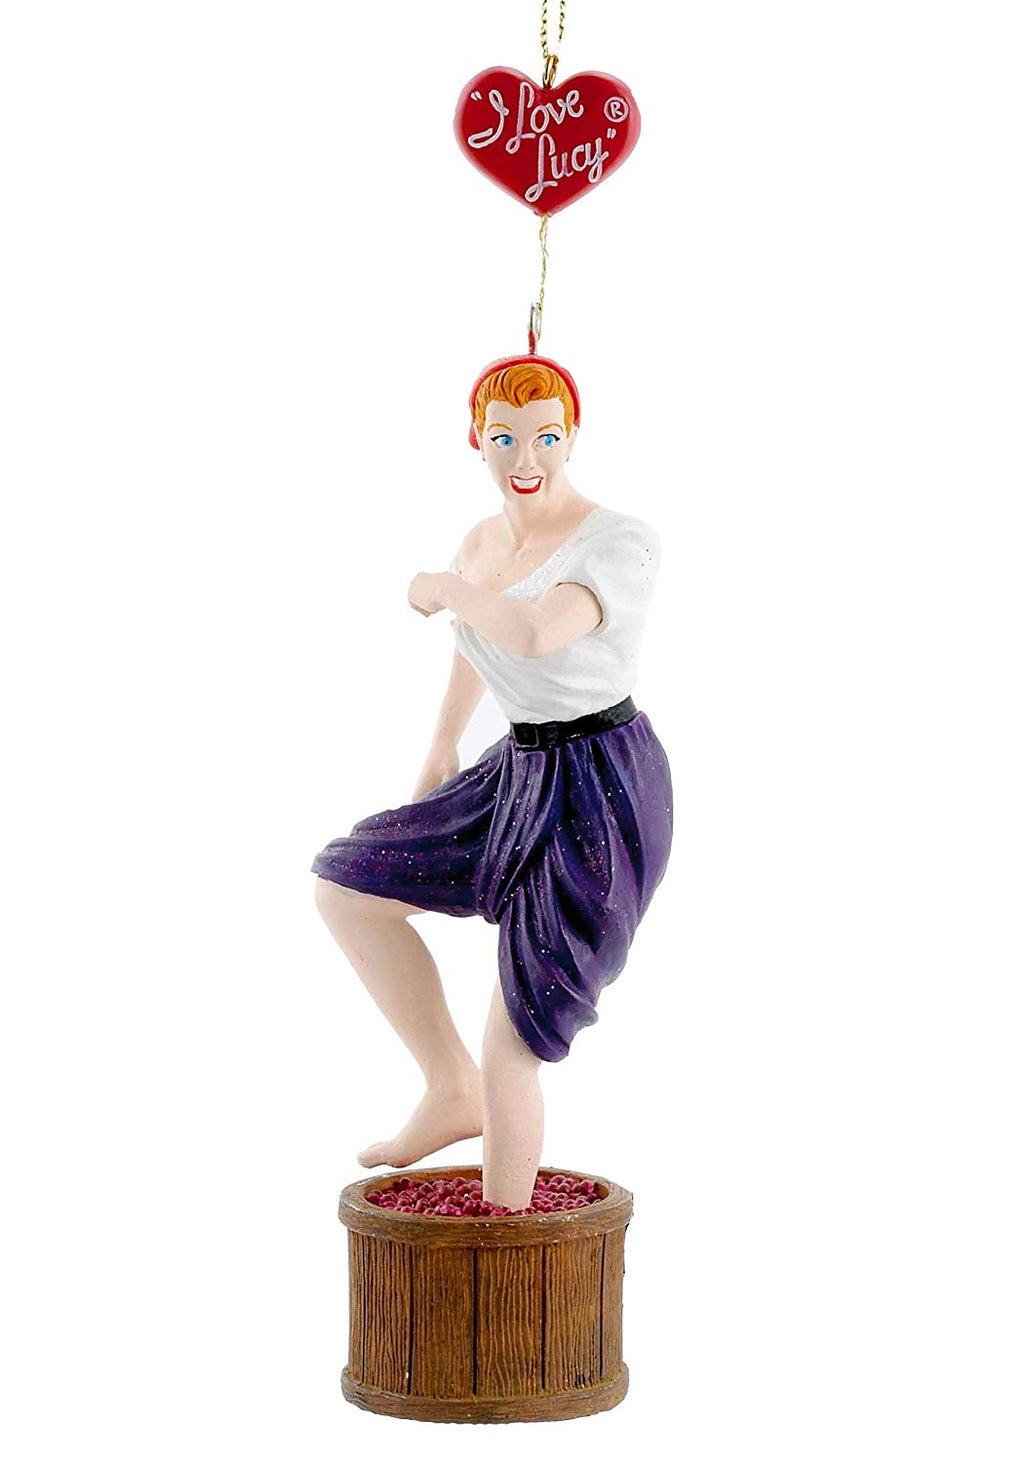 "5"" ""I LOVE LUCY"" STOMPING WINE GRAPES ORNAMENT by Kurt Adler"